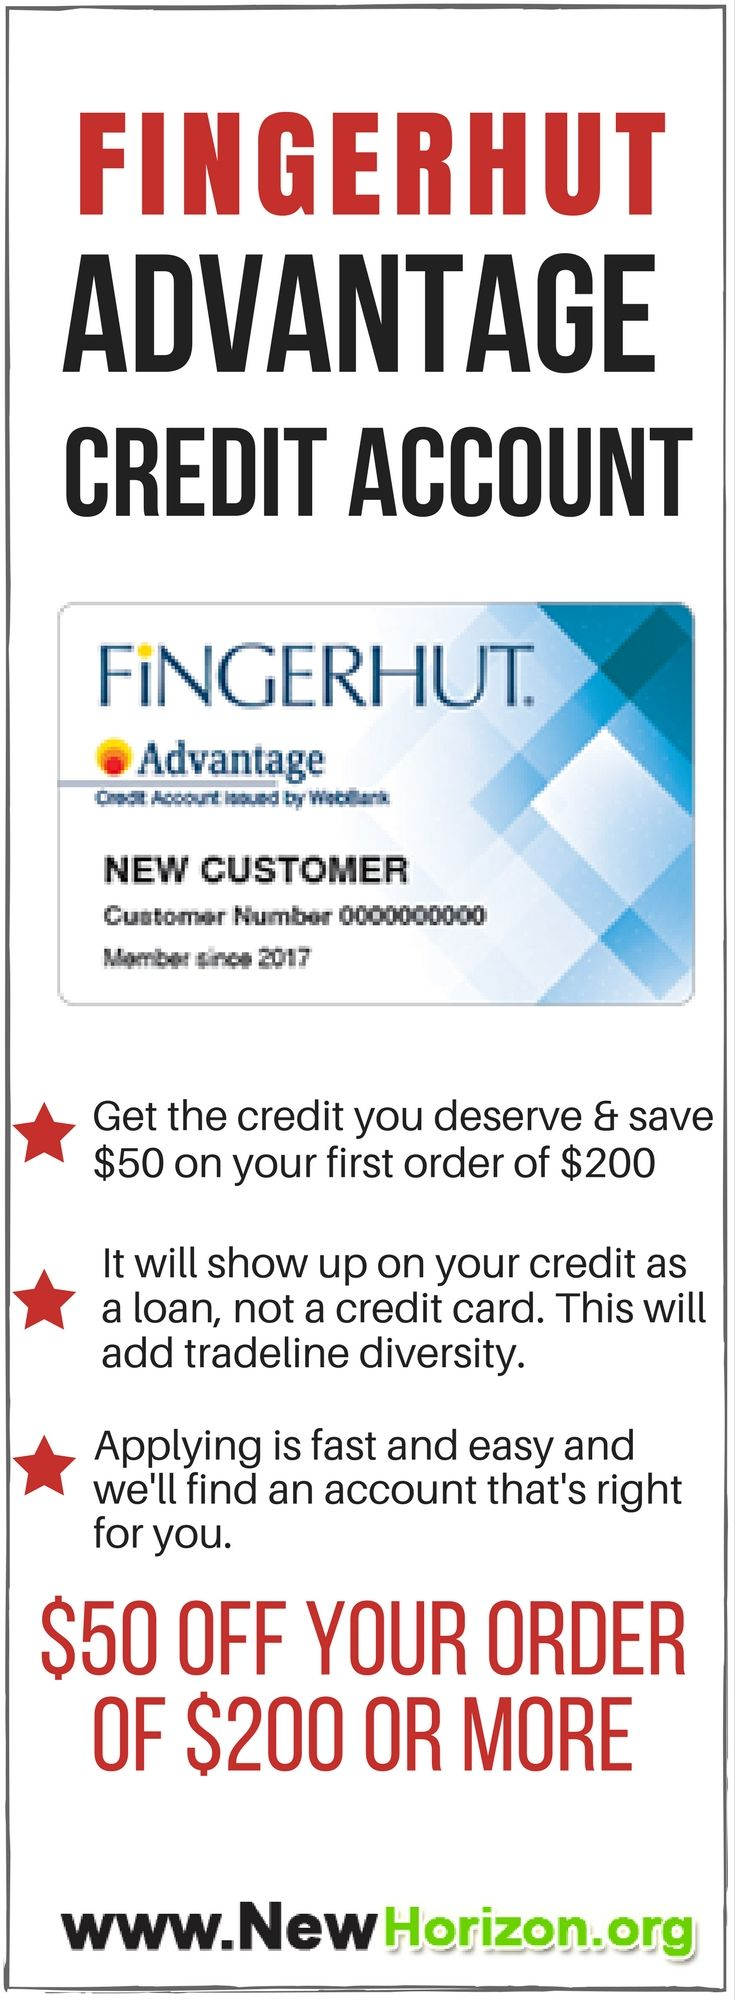 Get the credit you deserve and save 50 on your first